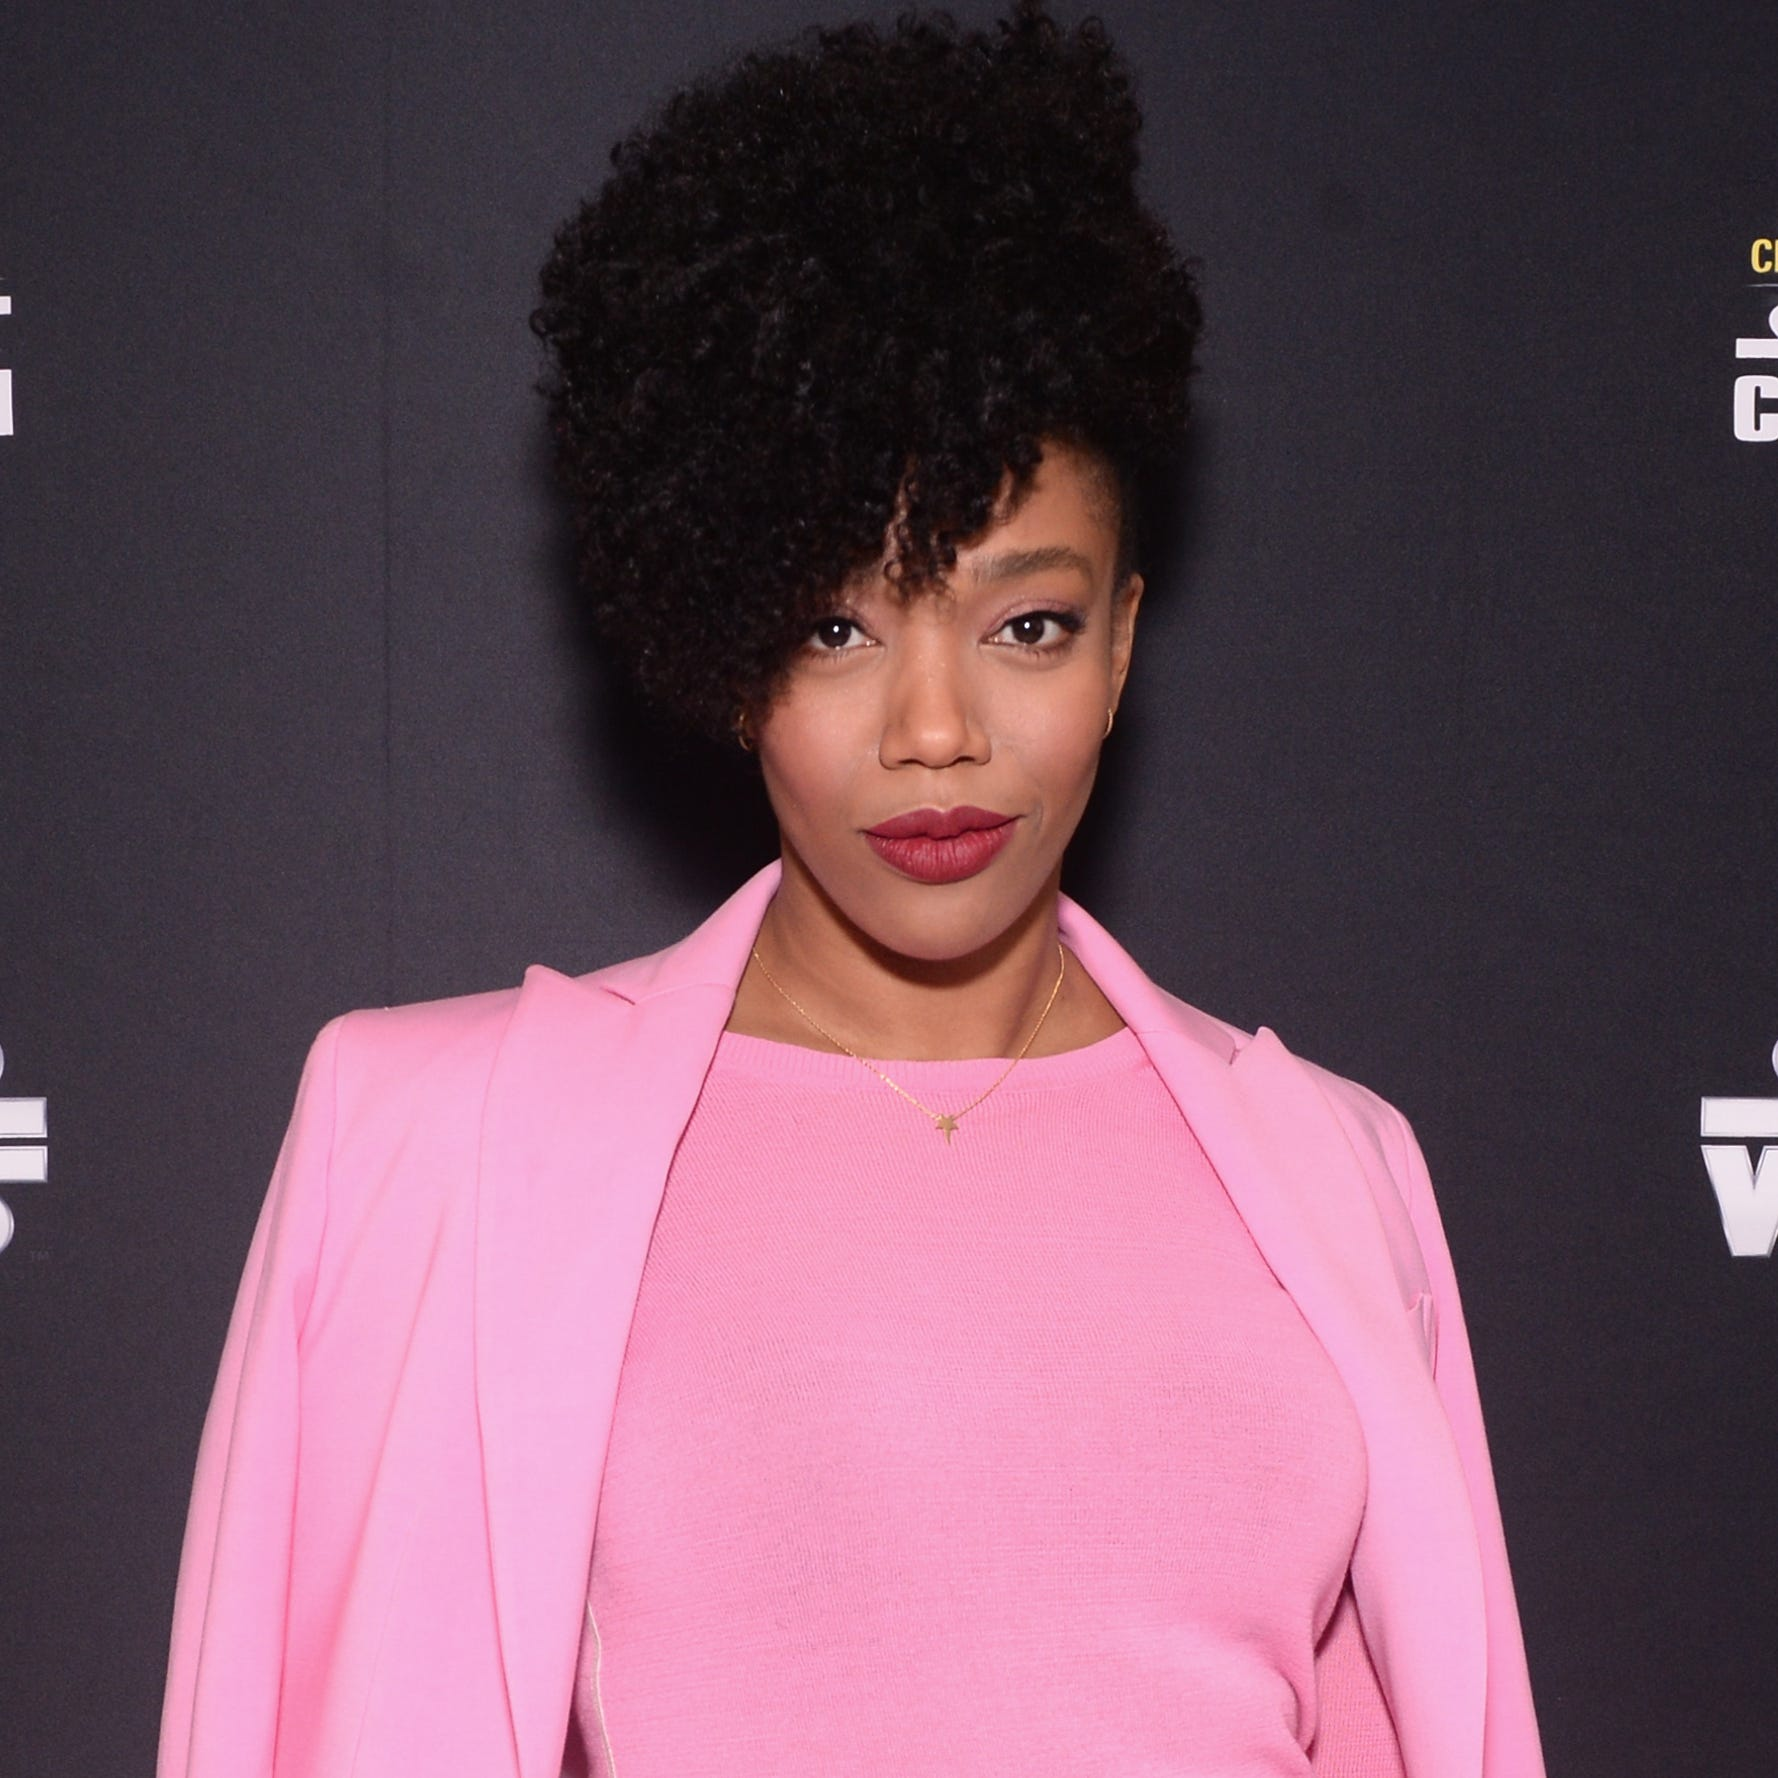 """Star Wars: The Rise of Skywalker"" actress Naomi Ackie was introduced to the franchise's fandom at Star Wars Celebration."